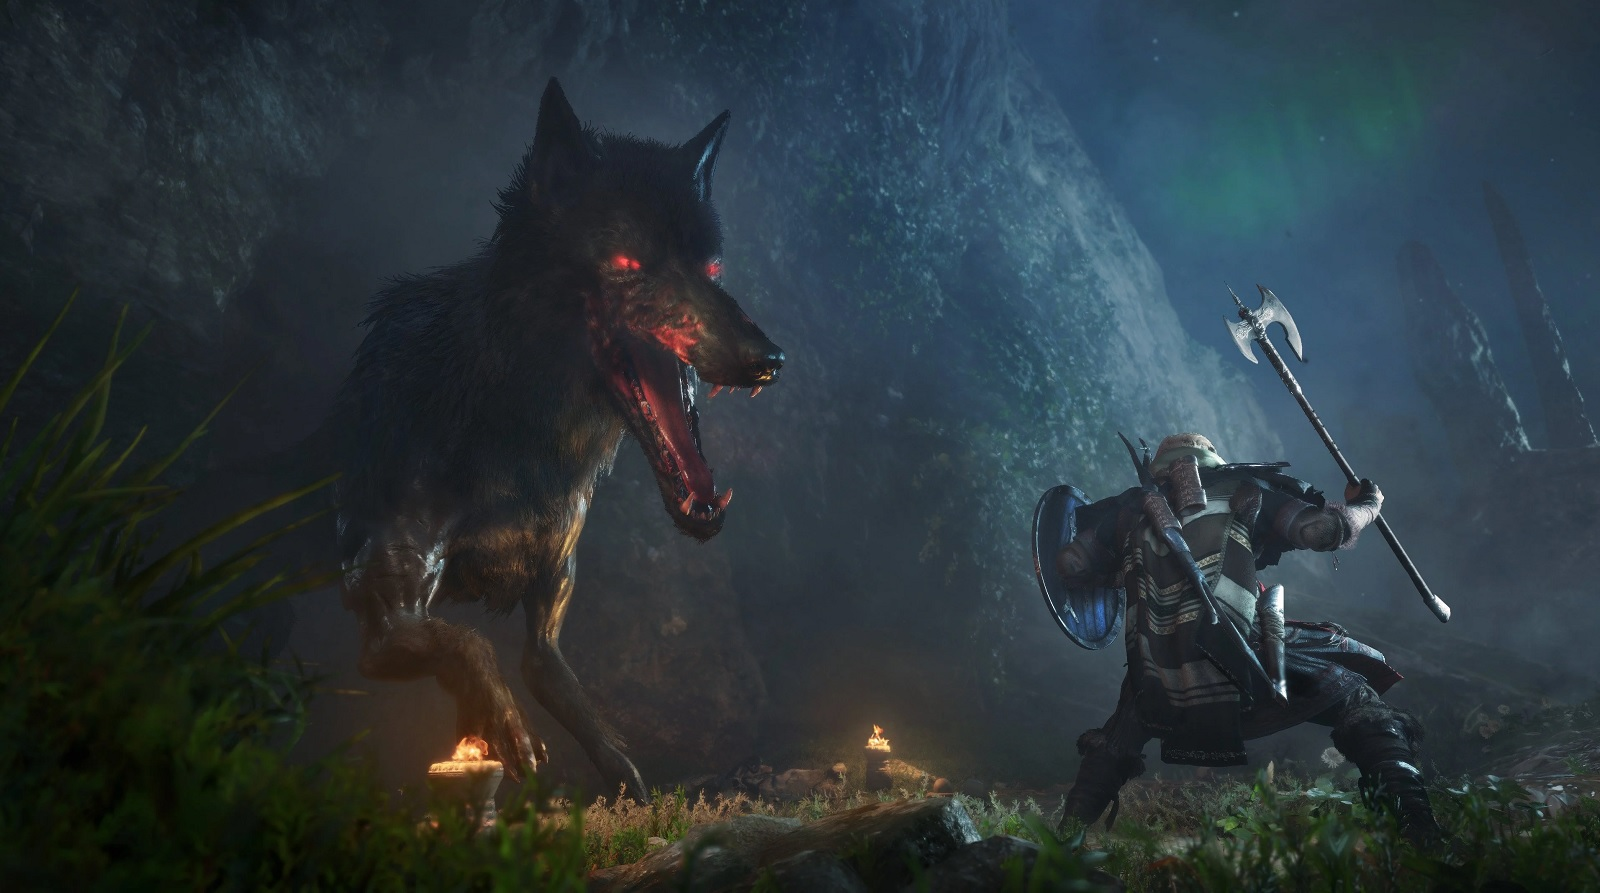 Fighting Fenrir from Assassin's Creed Valhalla